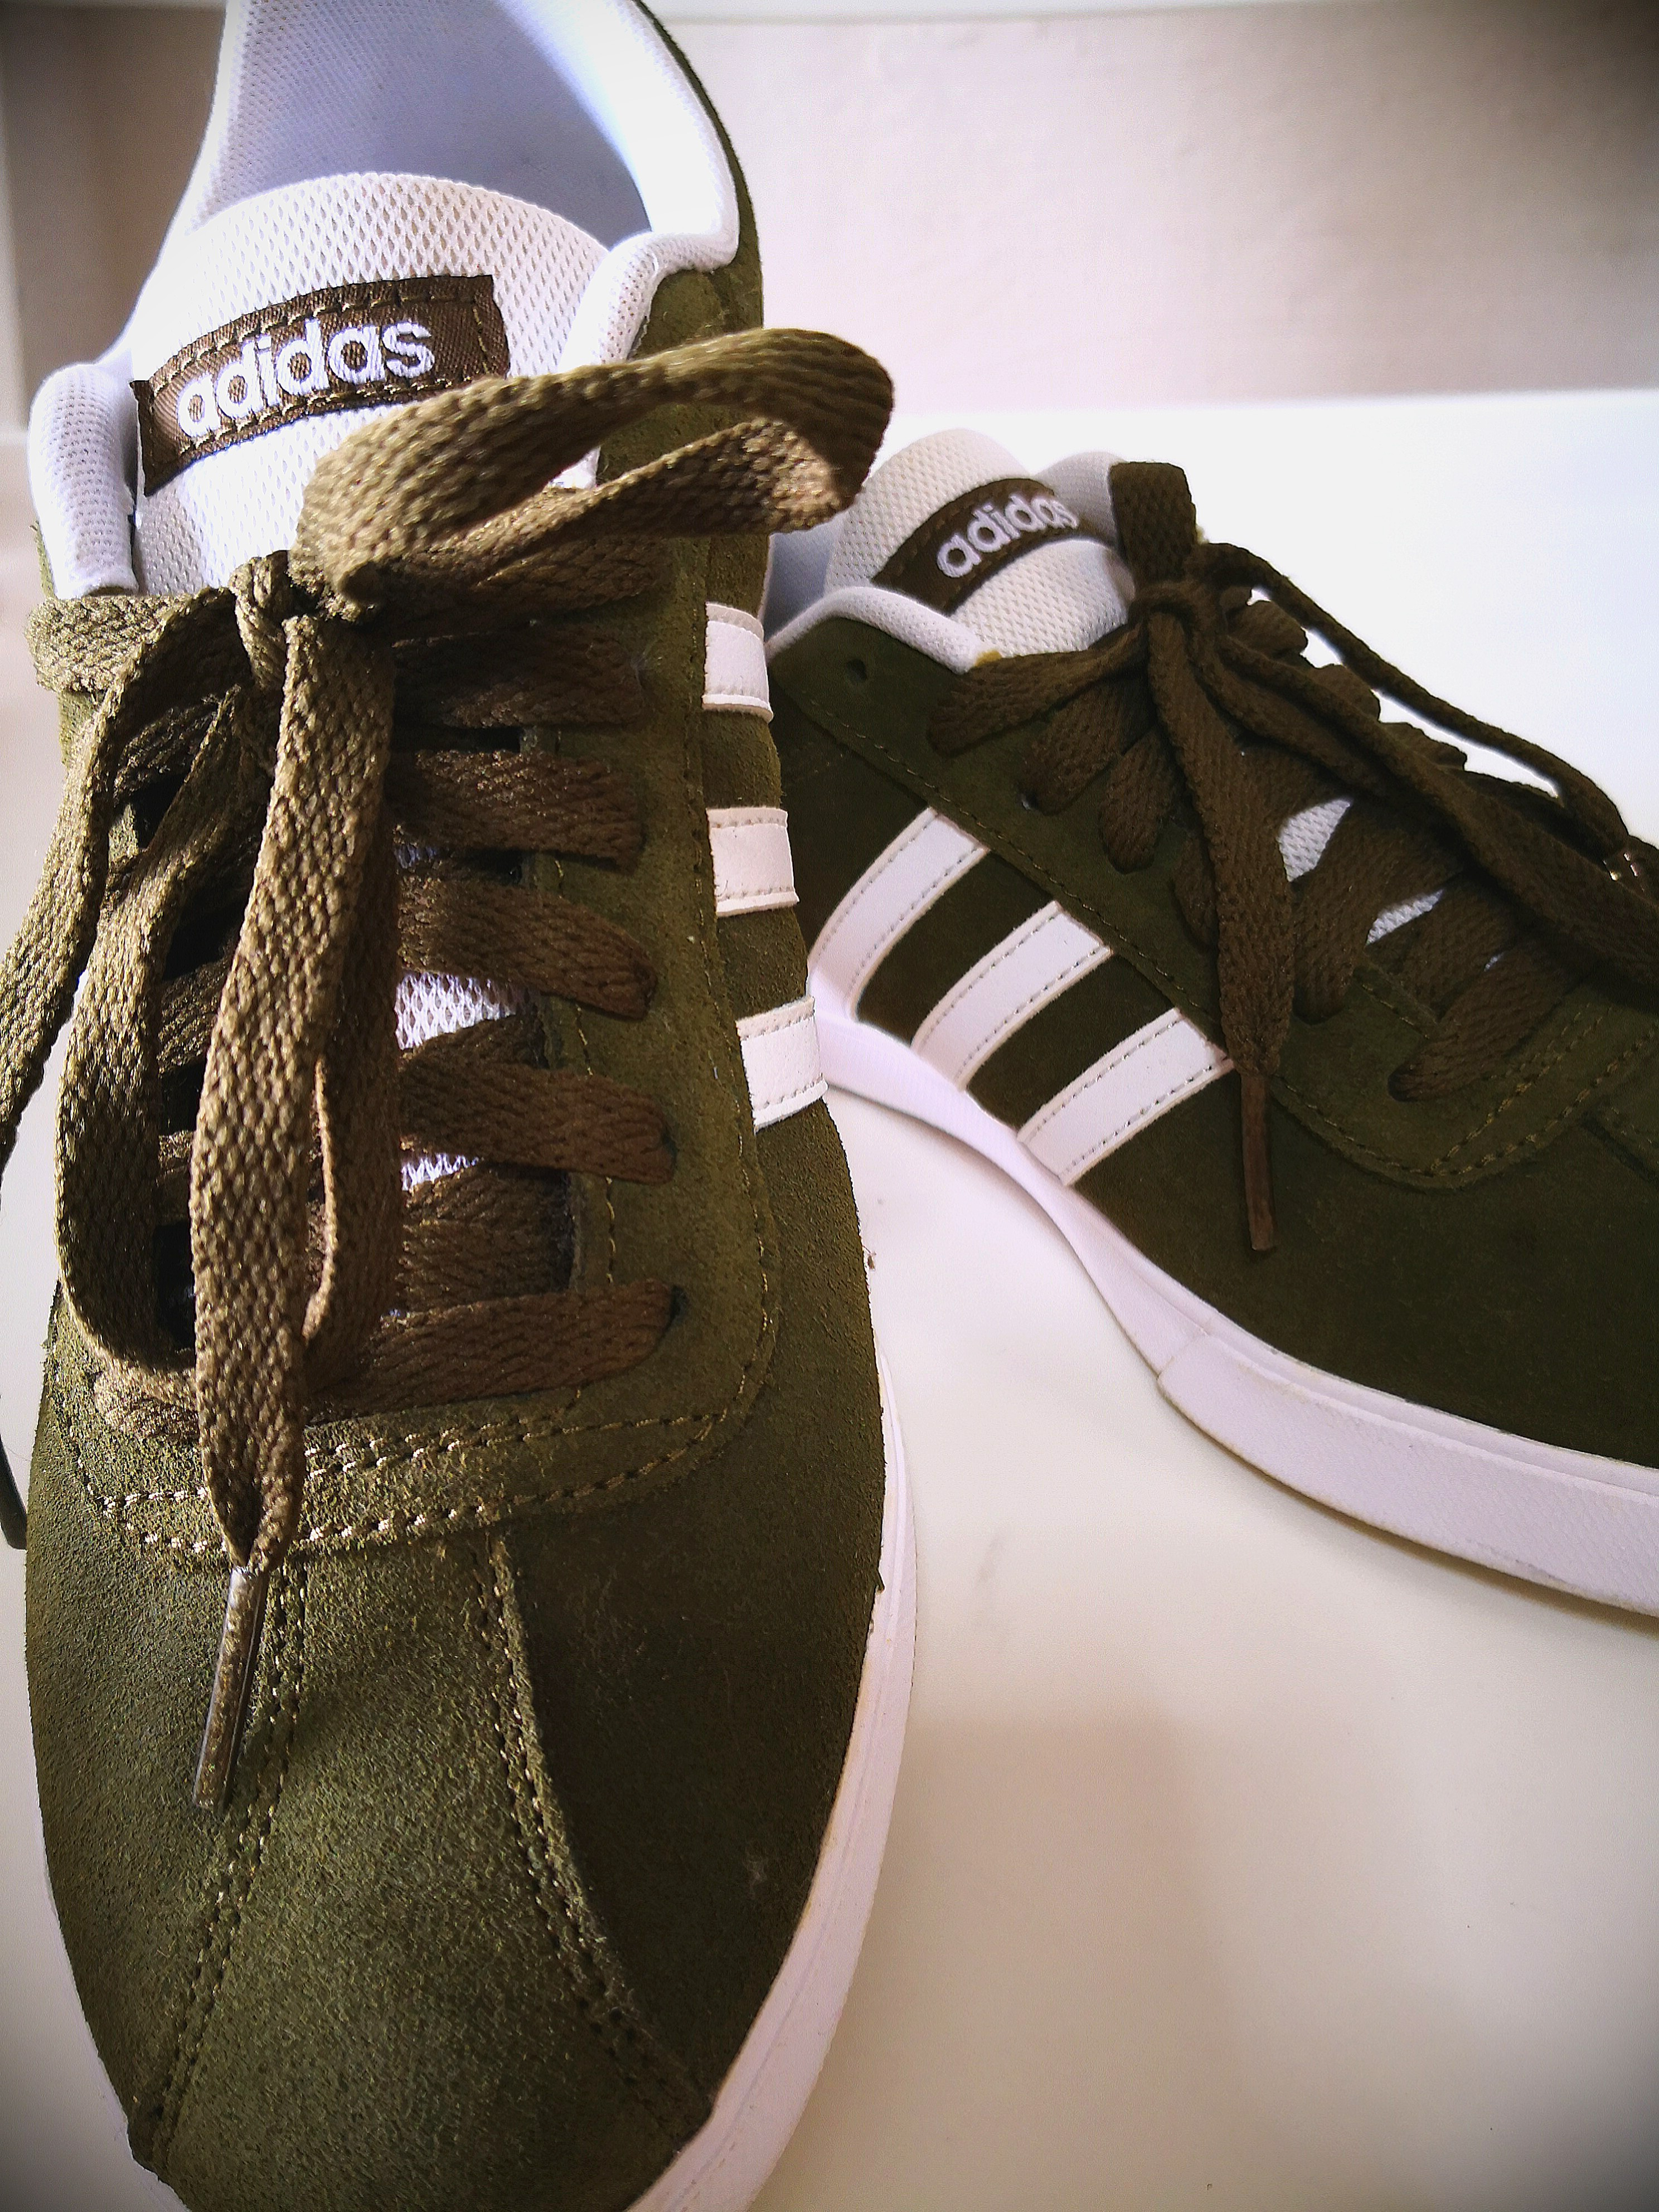 466c01b87cb11 Adidas Sneakers Olive Green